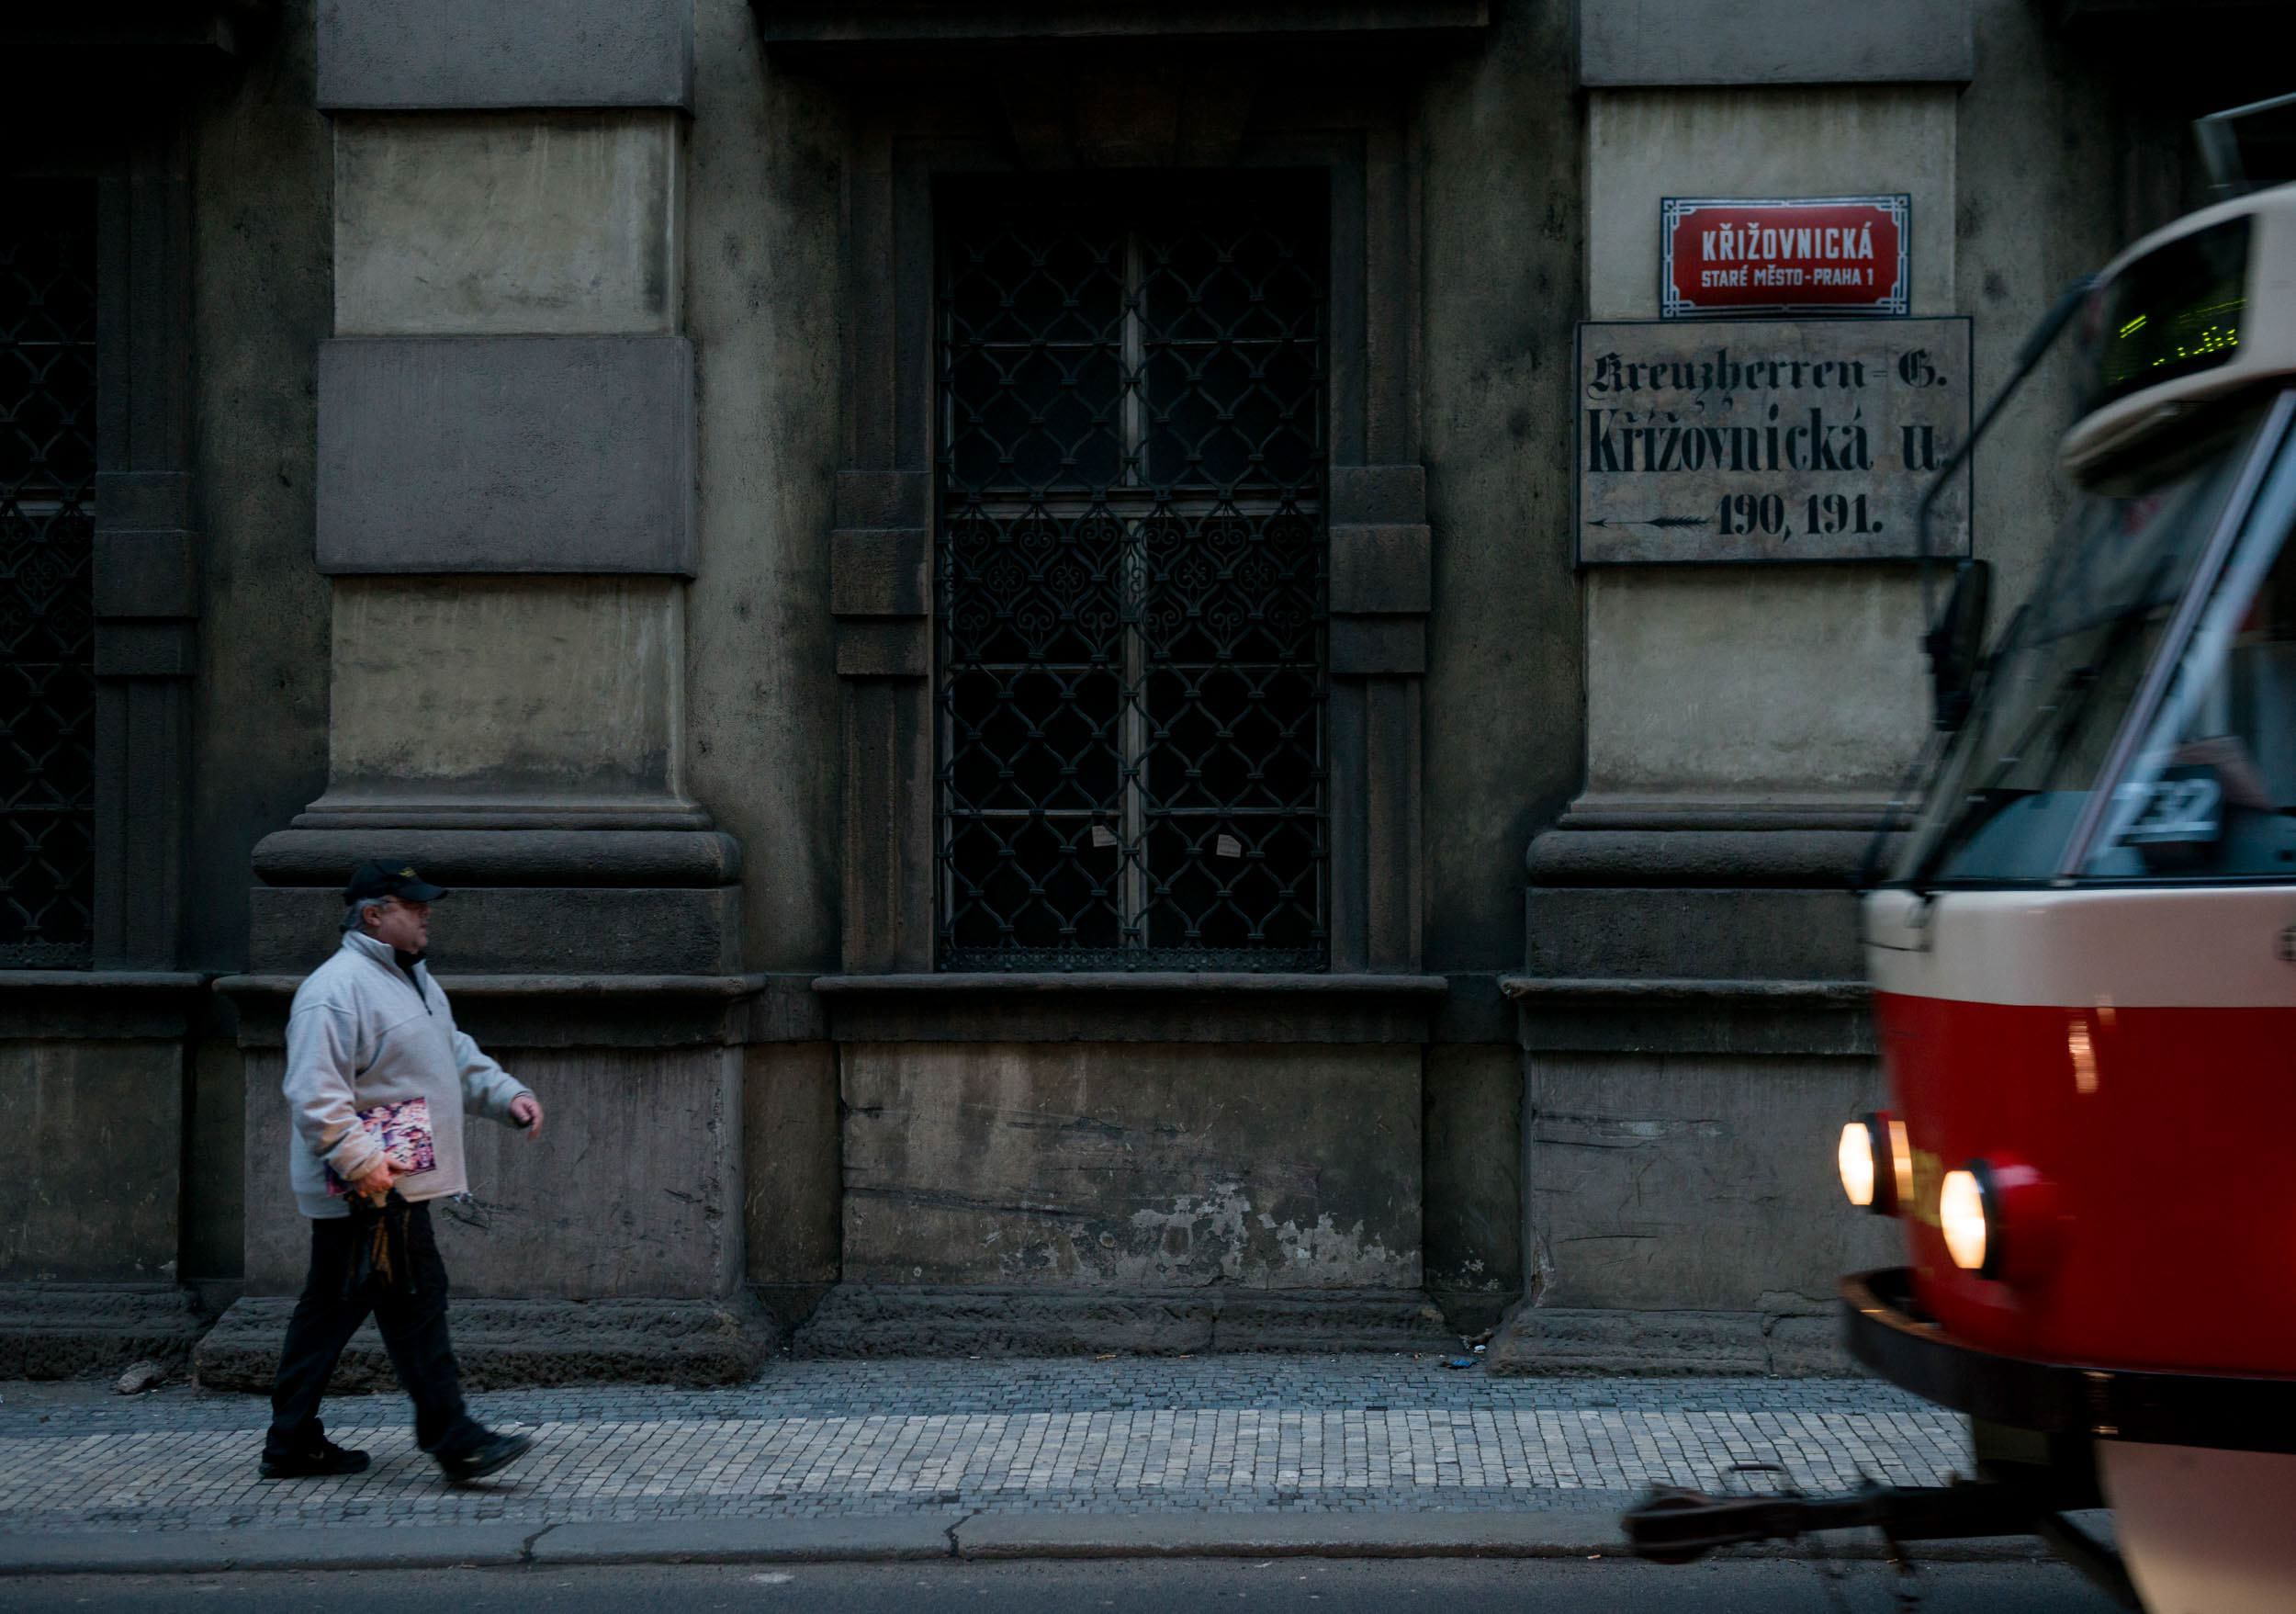 street-travel-prague-czech-republic